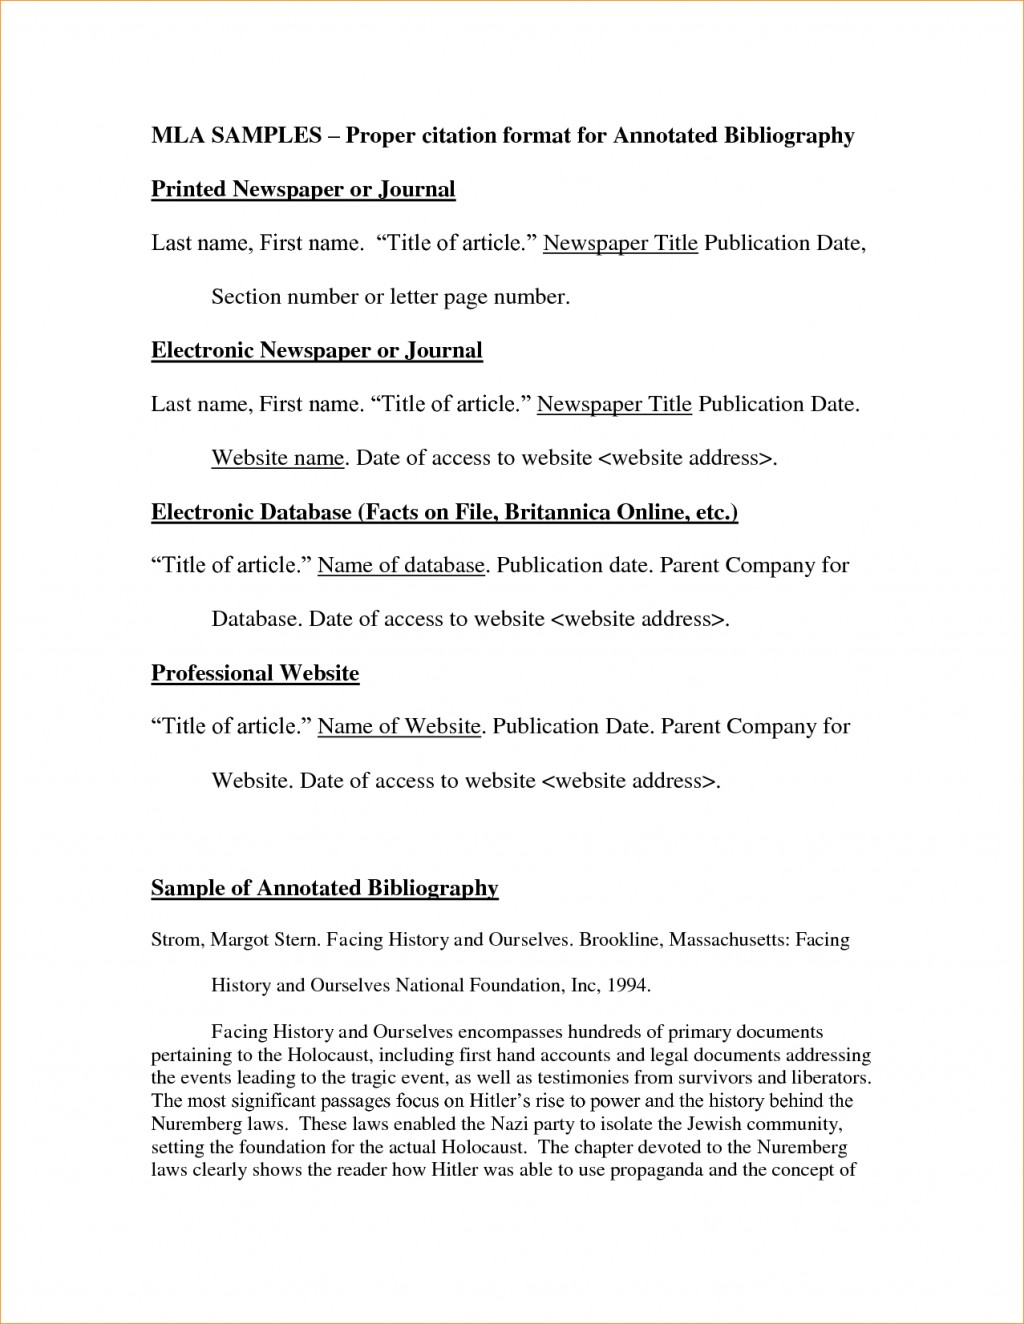 016 Mla Format Essay Example In Narrative Annotated Bibliography Template With Cover Page Title Works Cited Argumentative Persuasive Rare Style Pdf Large